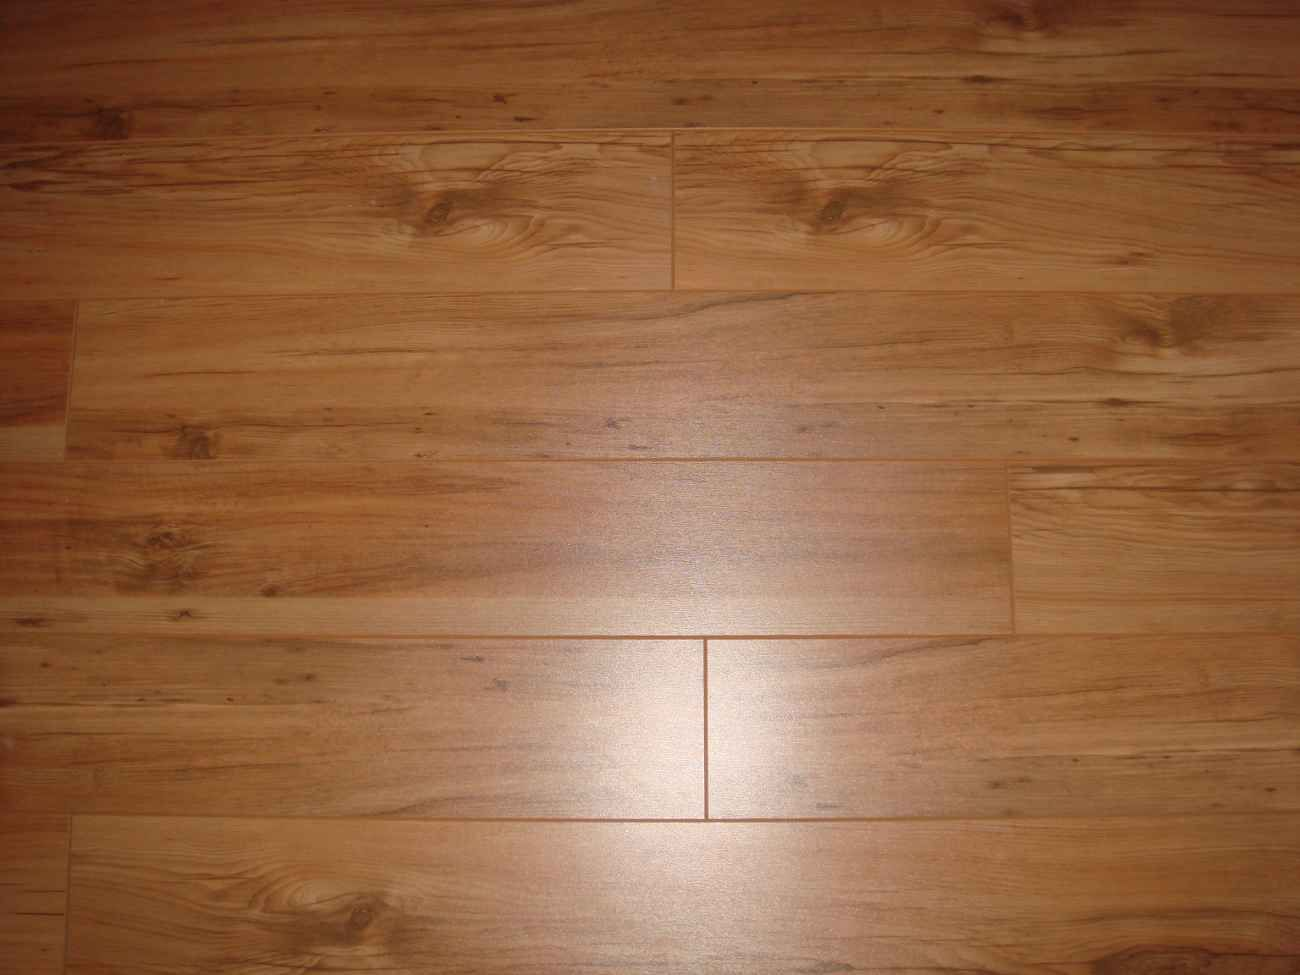 Best 25 ceramic tile floors ideas on pinterest ceramic tile ceramic tile that looks like wood wooden ceramic tile floors feel the home dailygadgetfo Images